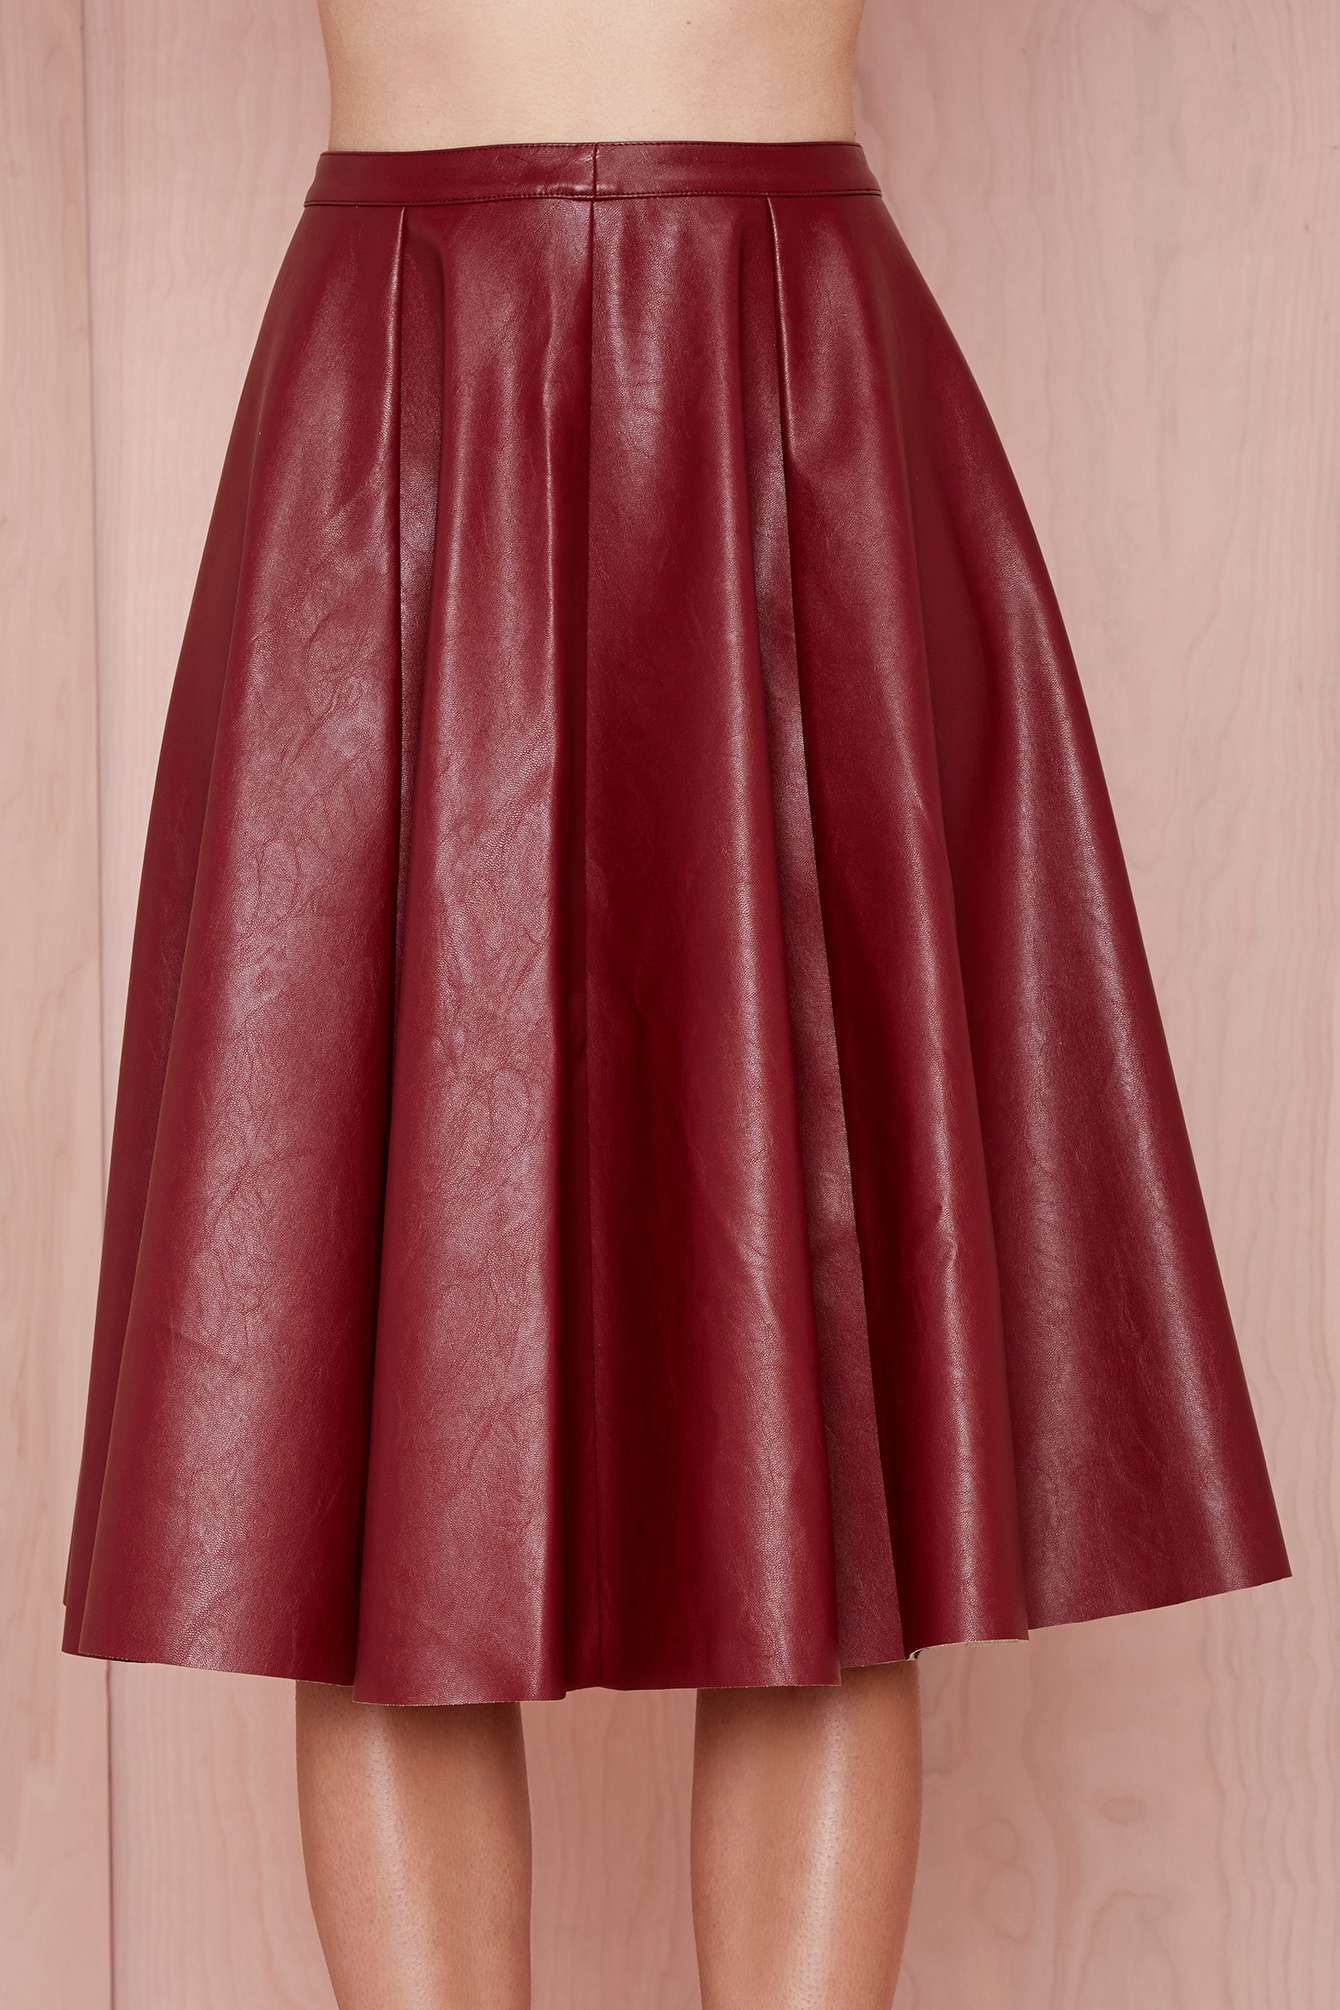 50df6540d Shop Wine Red PU Leather Pleated Skirt online. Sheinside offers Wine Red PU Leather  Pleated Skirt & more to fit your fashionable needs.